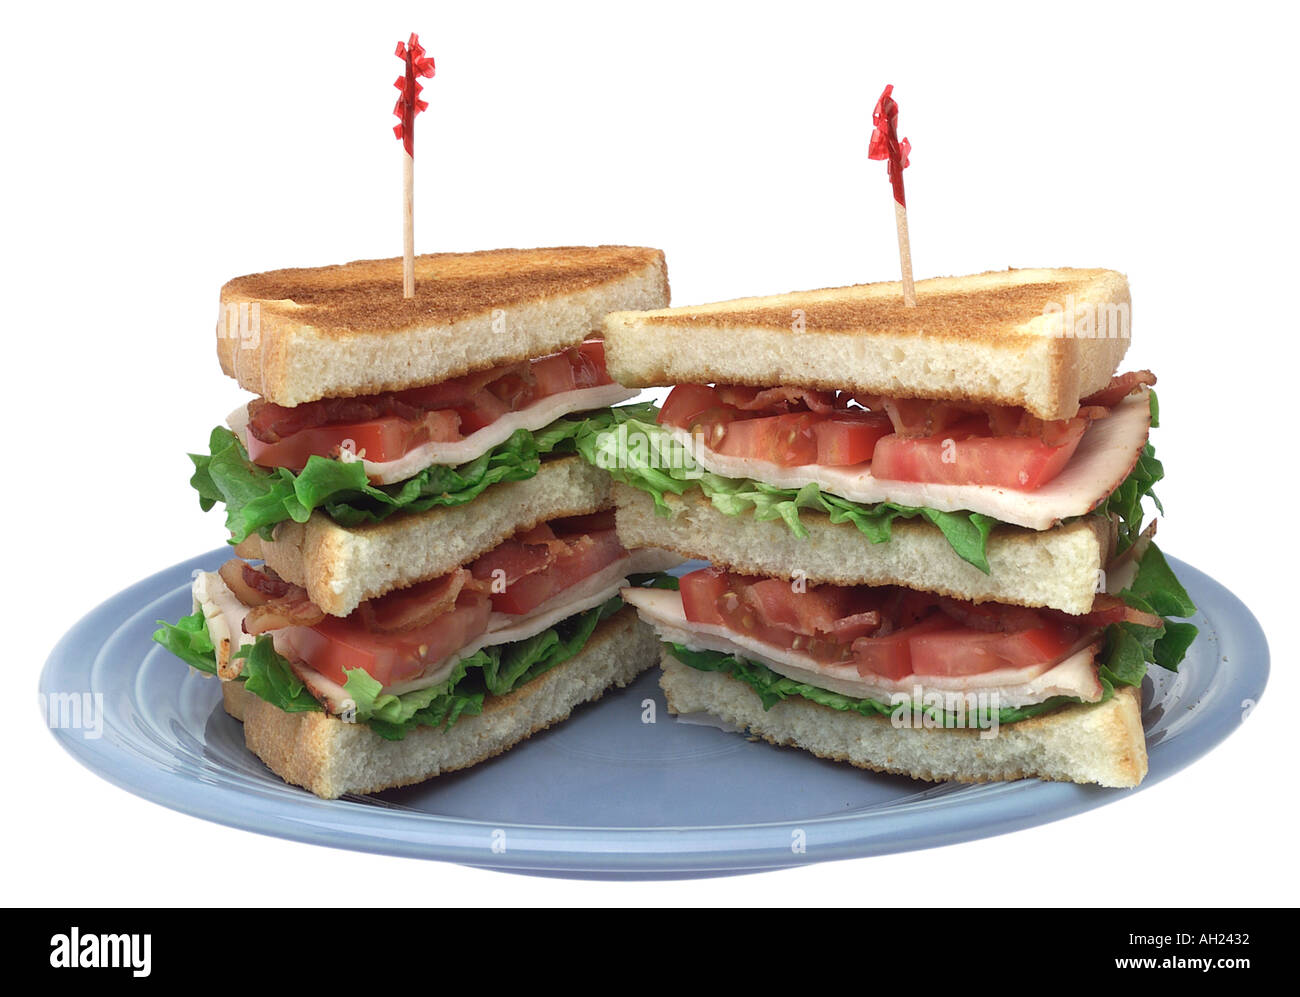 Club sandwich with toothpicks on plate silhouetted on white background - Stock Image